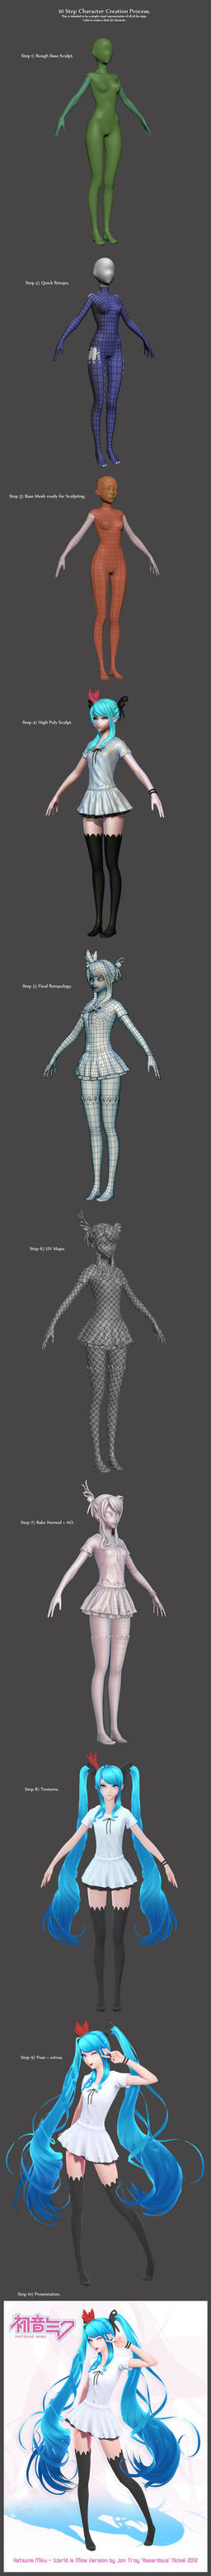 My 10 Steps to 3D Character Creation by HazardousArts